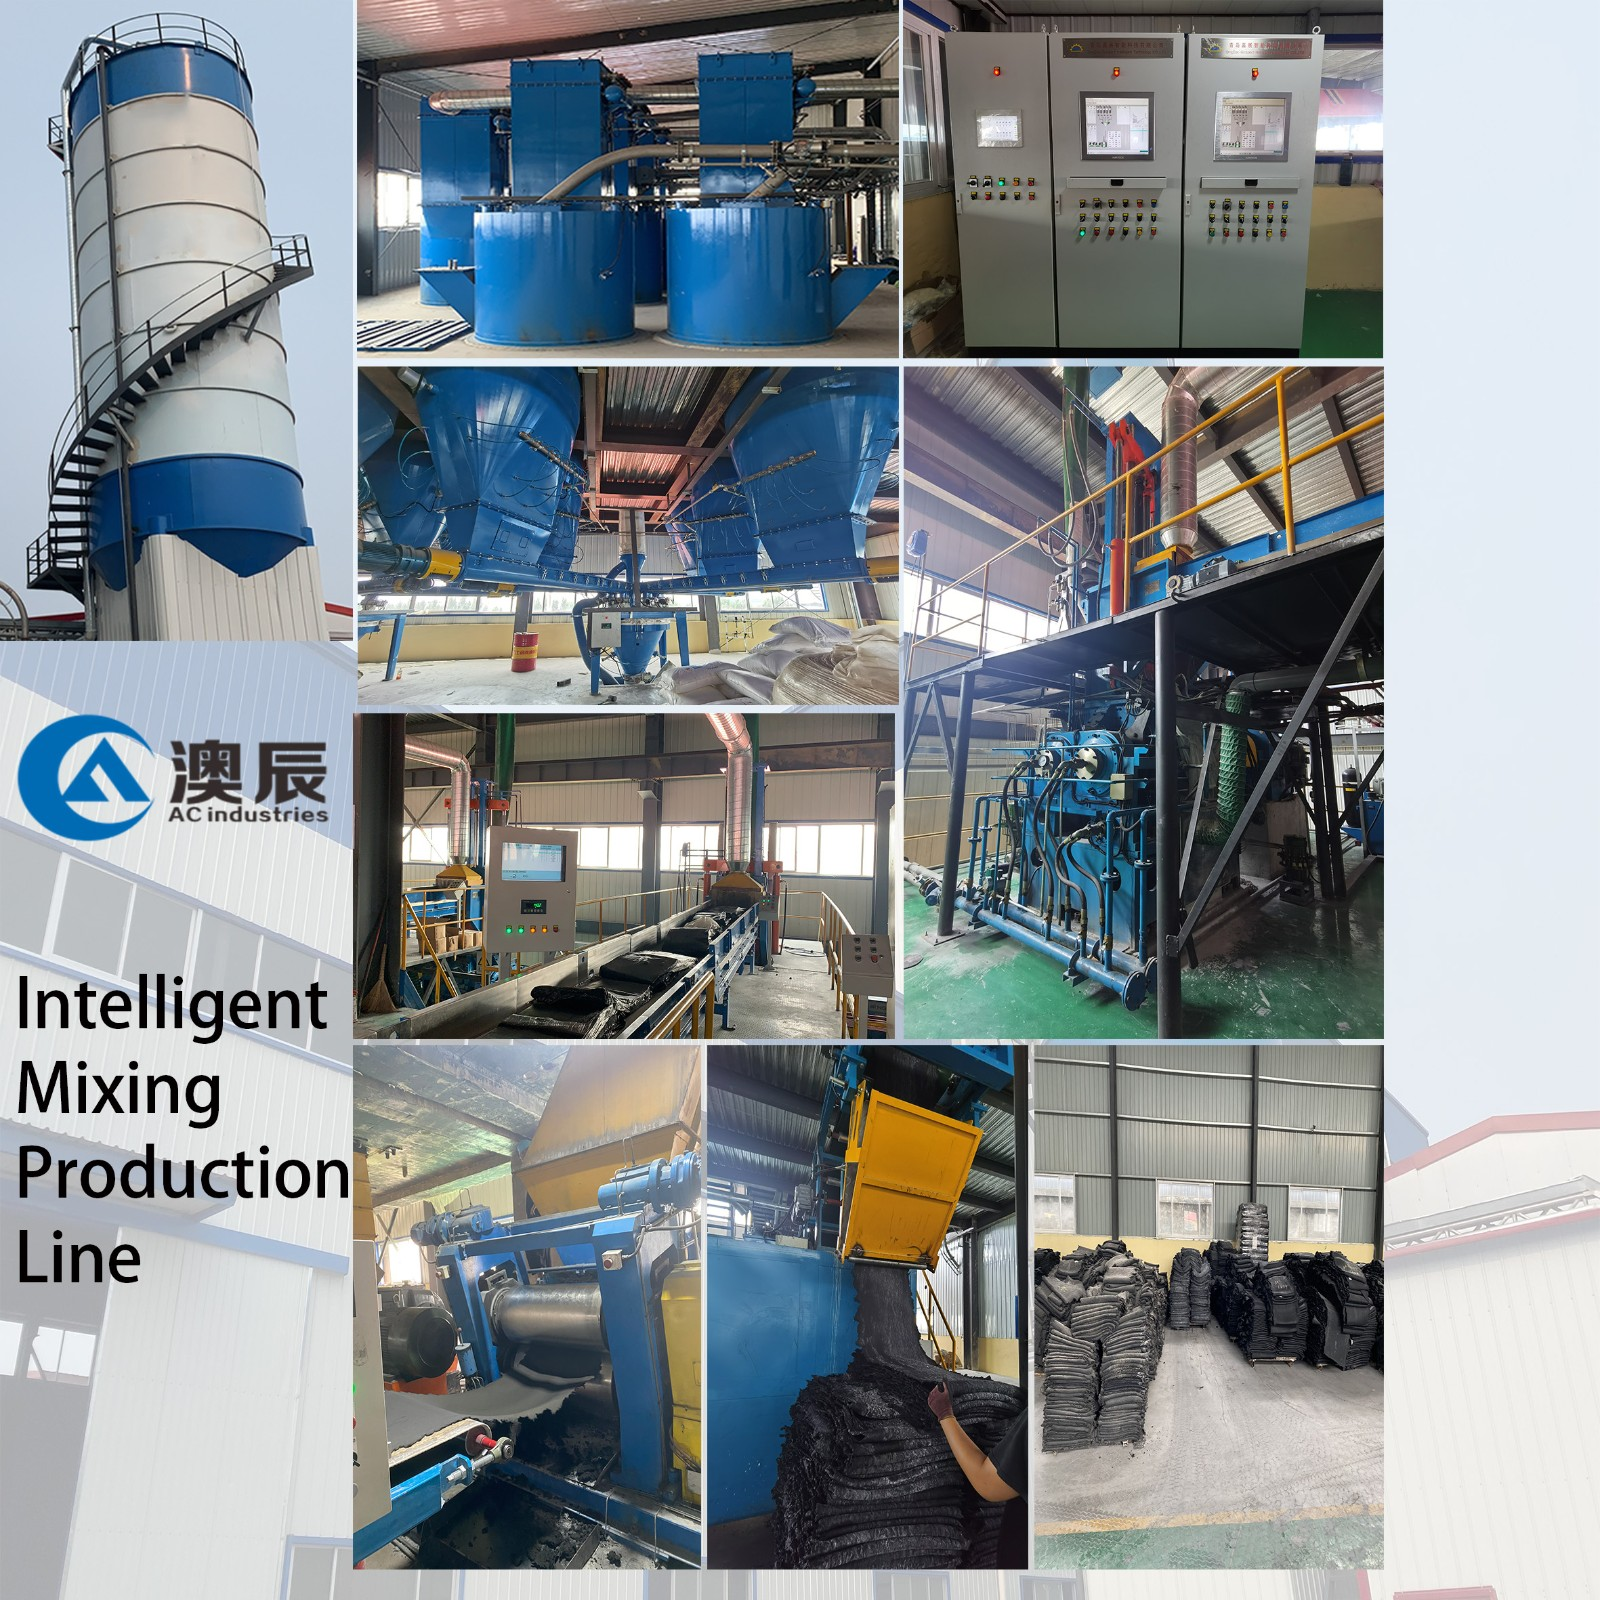 THE INTELLIGENT RUBBER MIXING PRODUCTION LINE